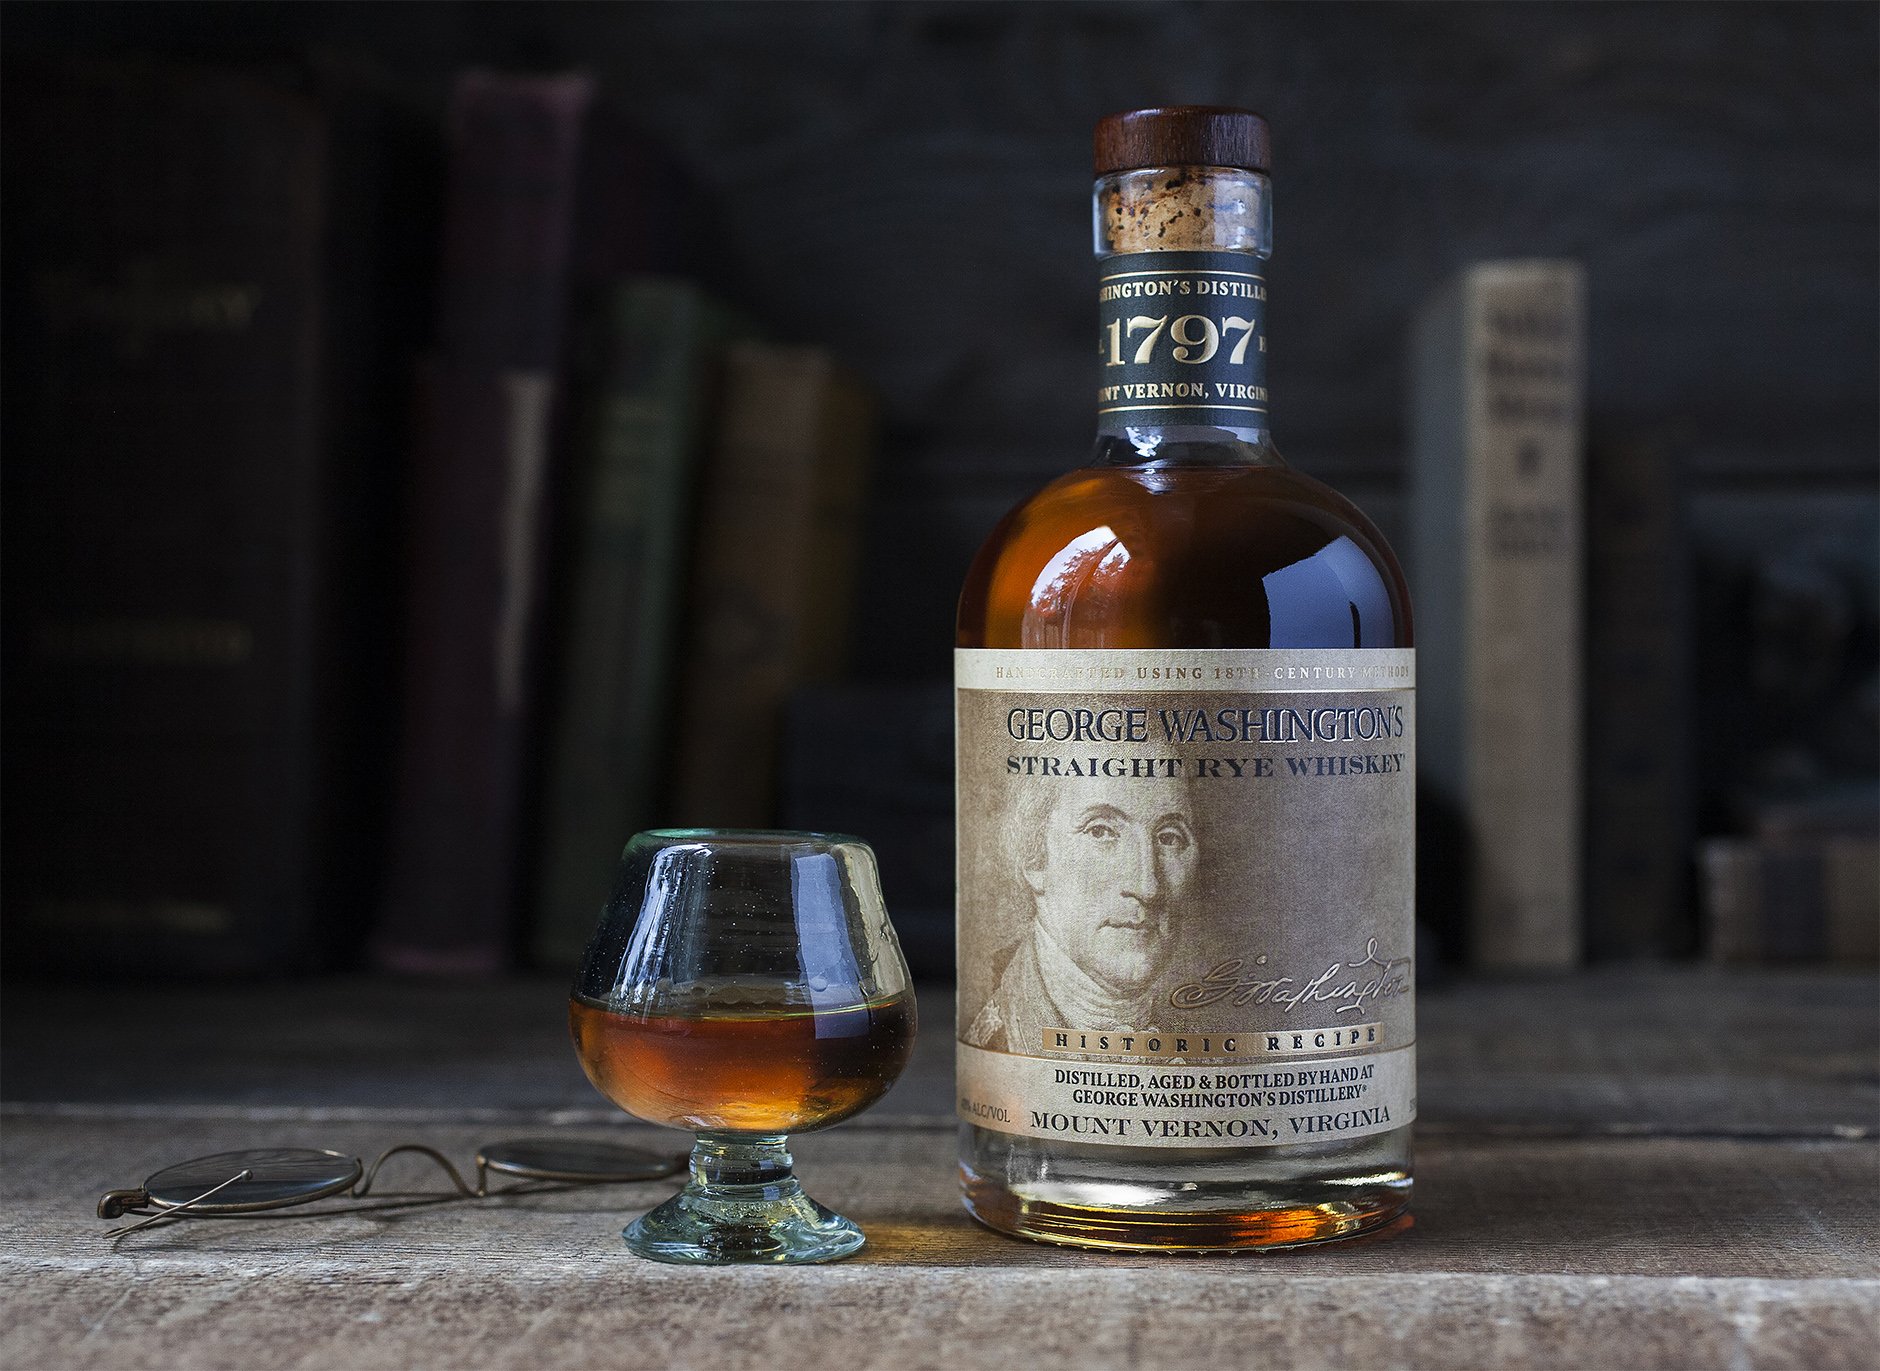 George Washington's Rye Whiskey, Mount Vernon